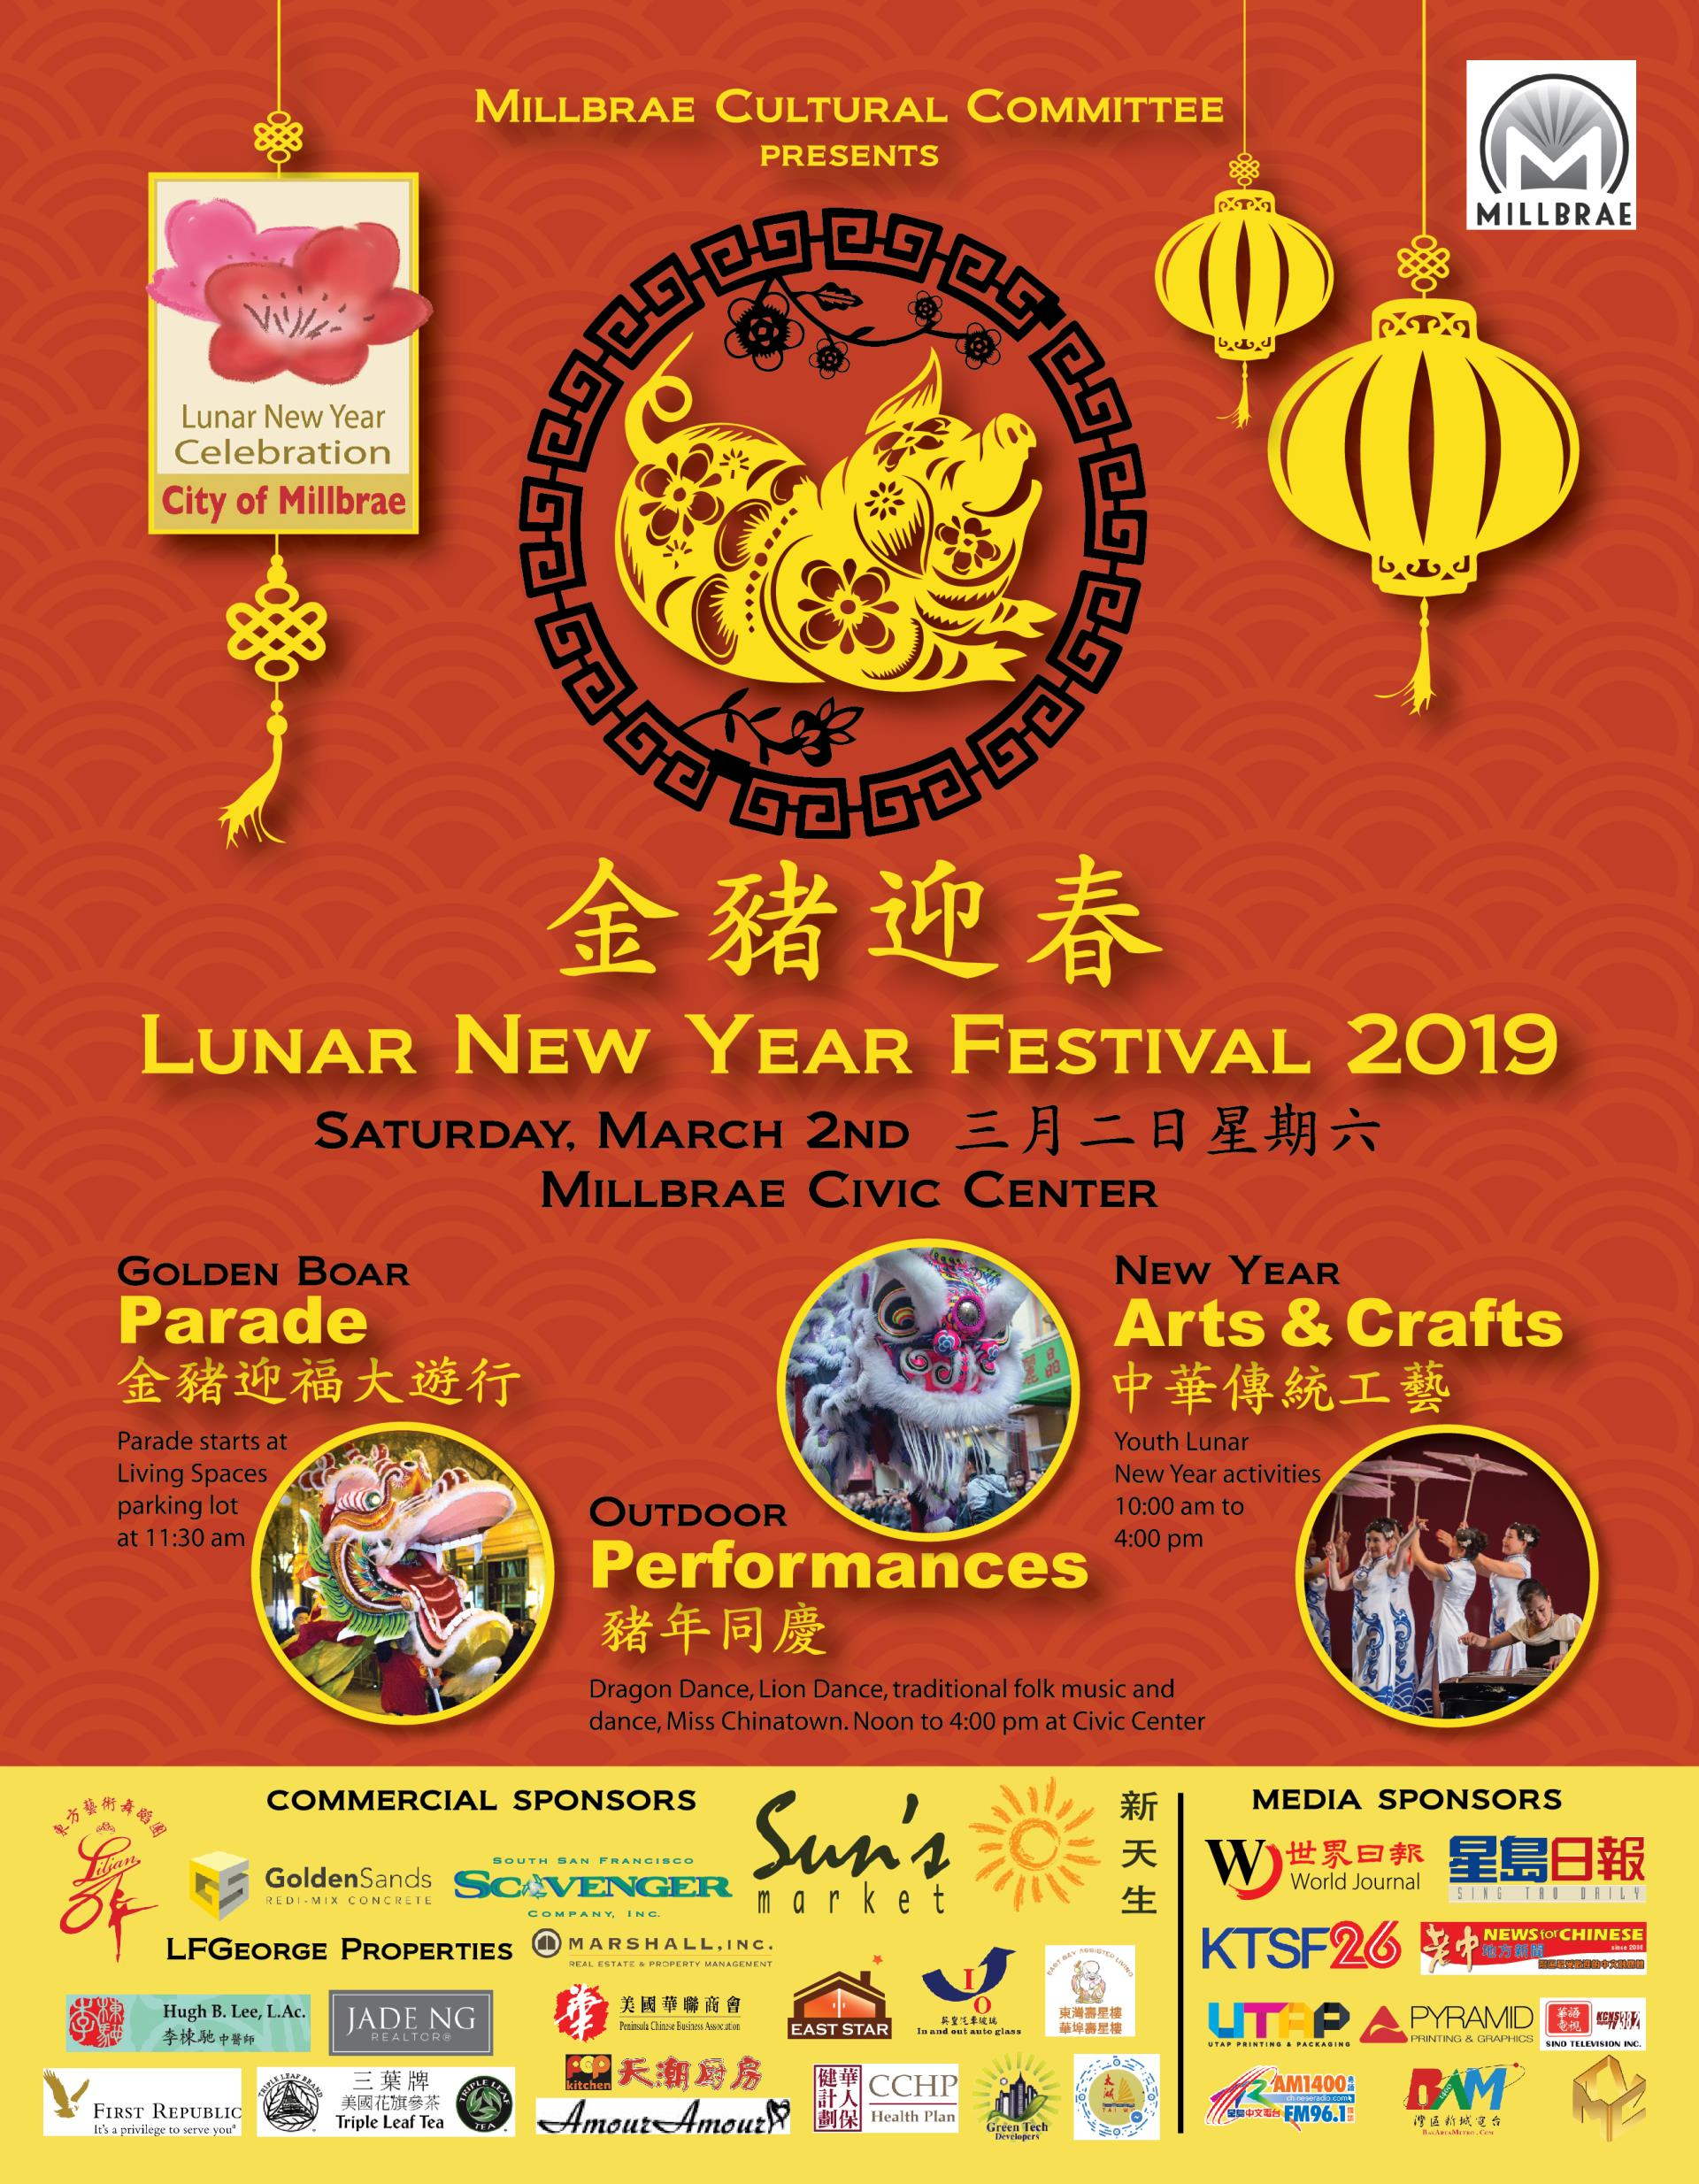 Millbrae Lunar New Year 2019 Flyer